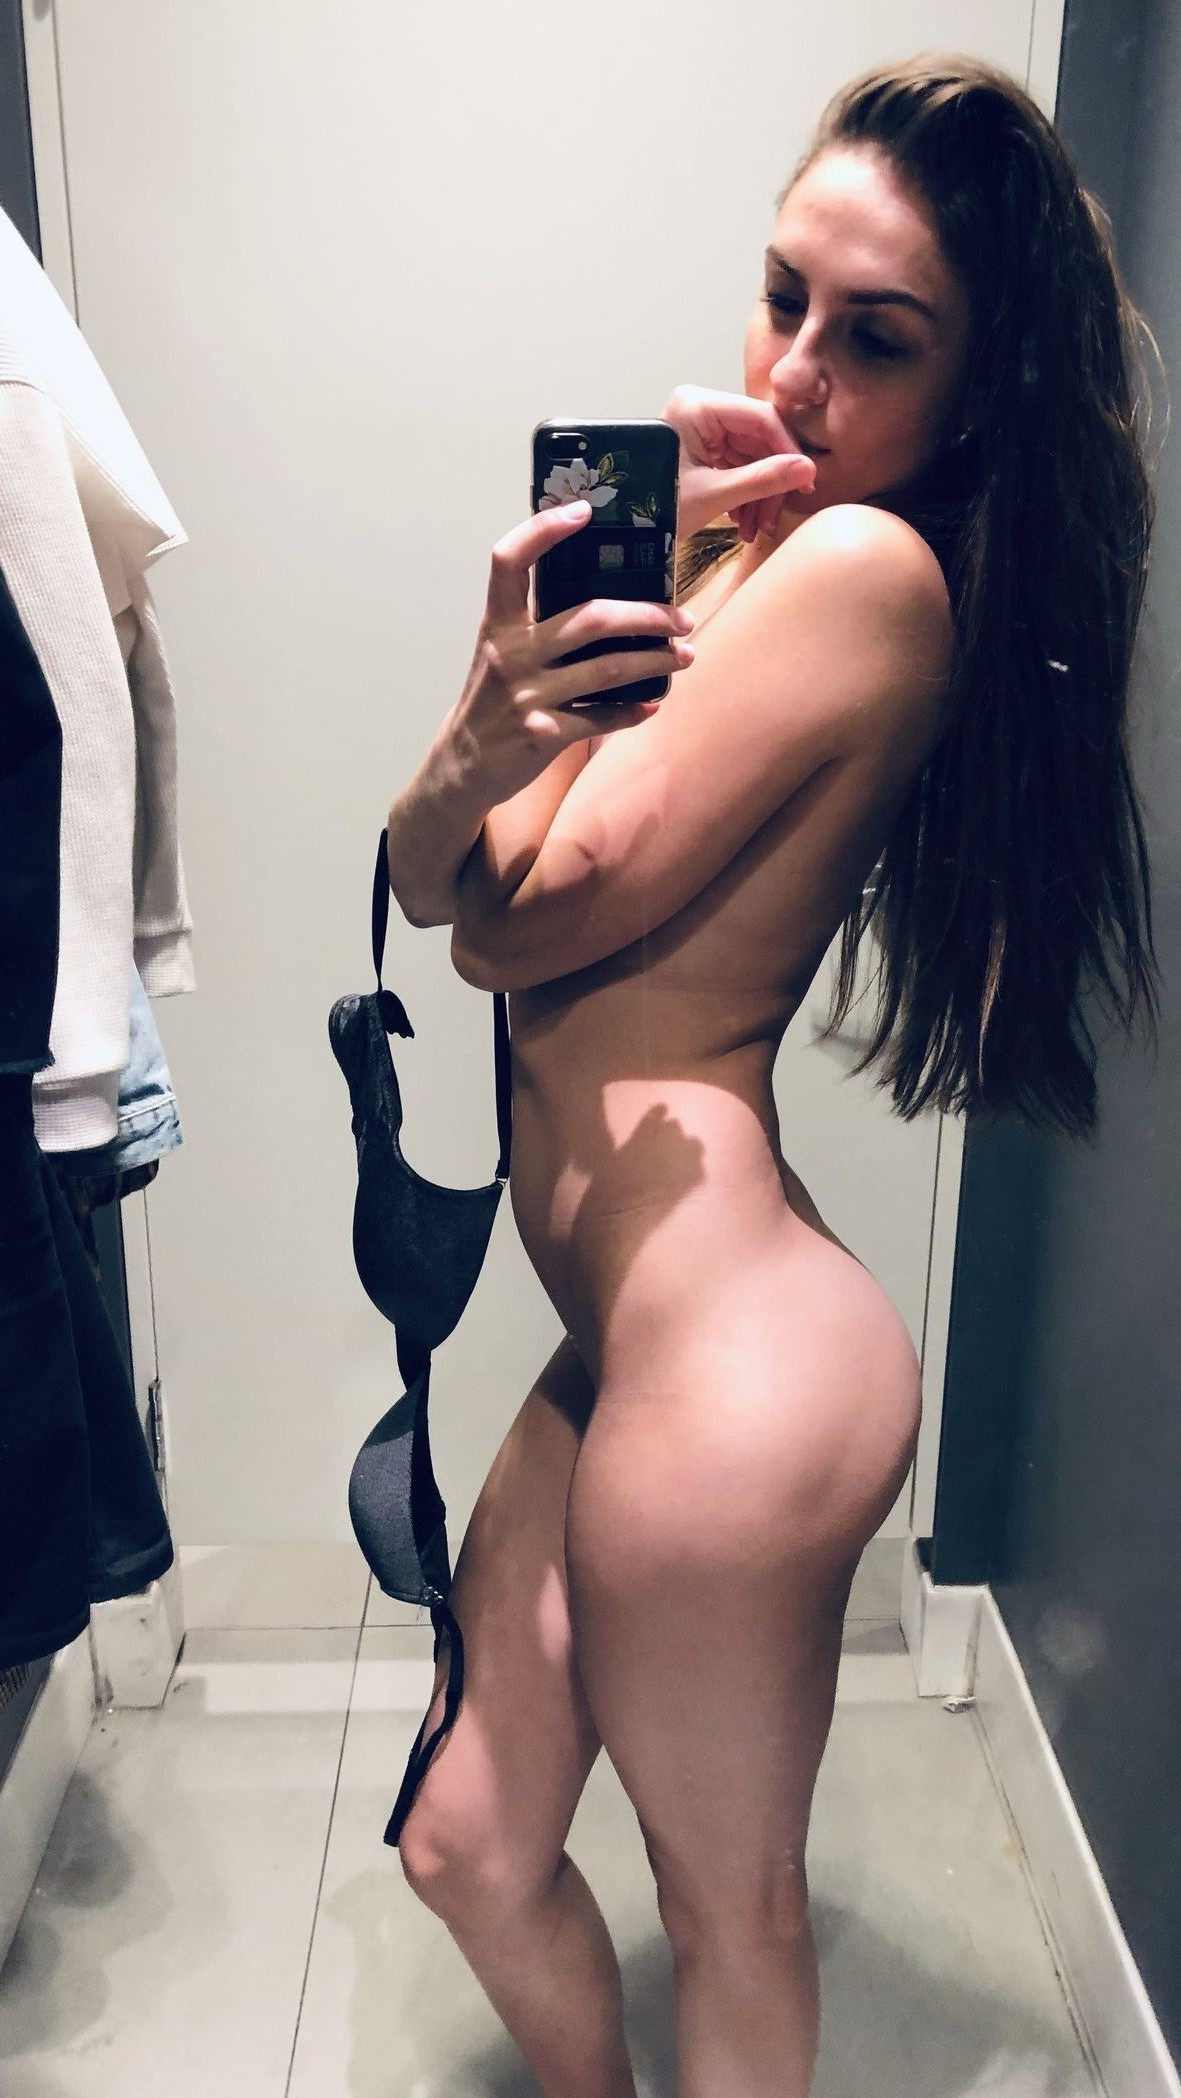 Changing Room Nude? Not A Big Deal For Me